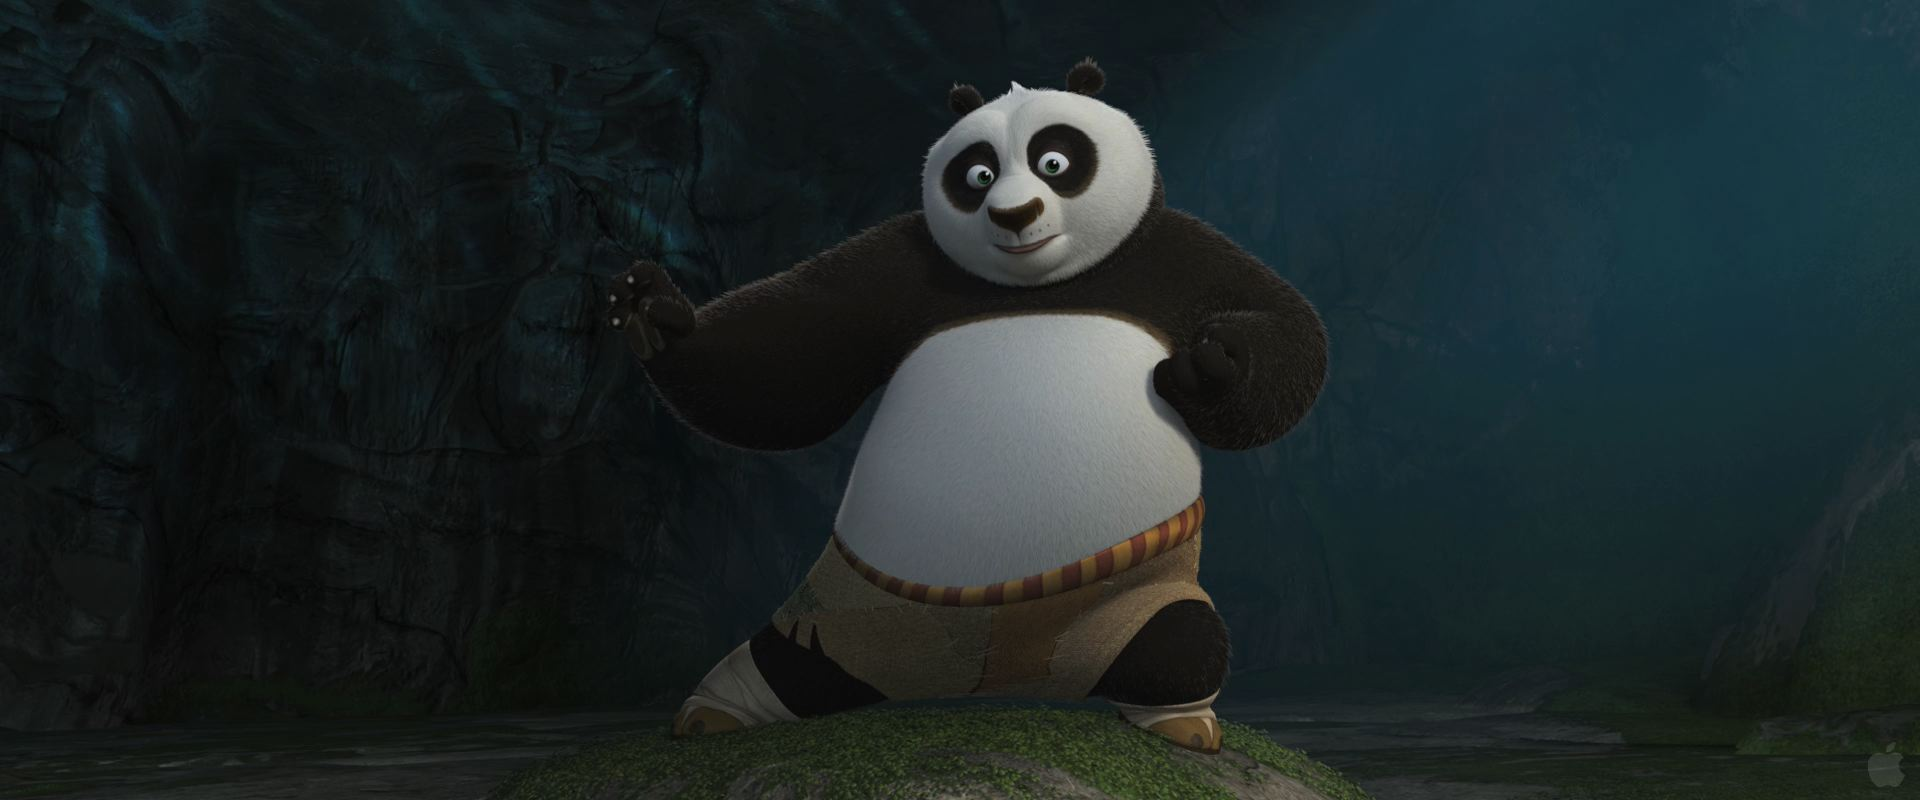 Po in Kung Fu Panda 2 Movie Desktop Wallpaper